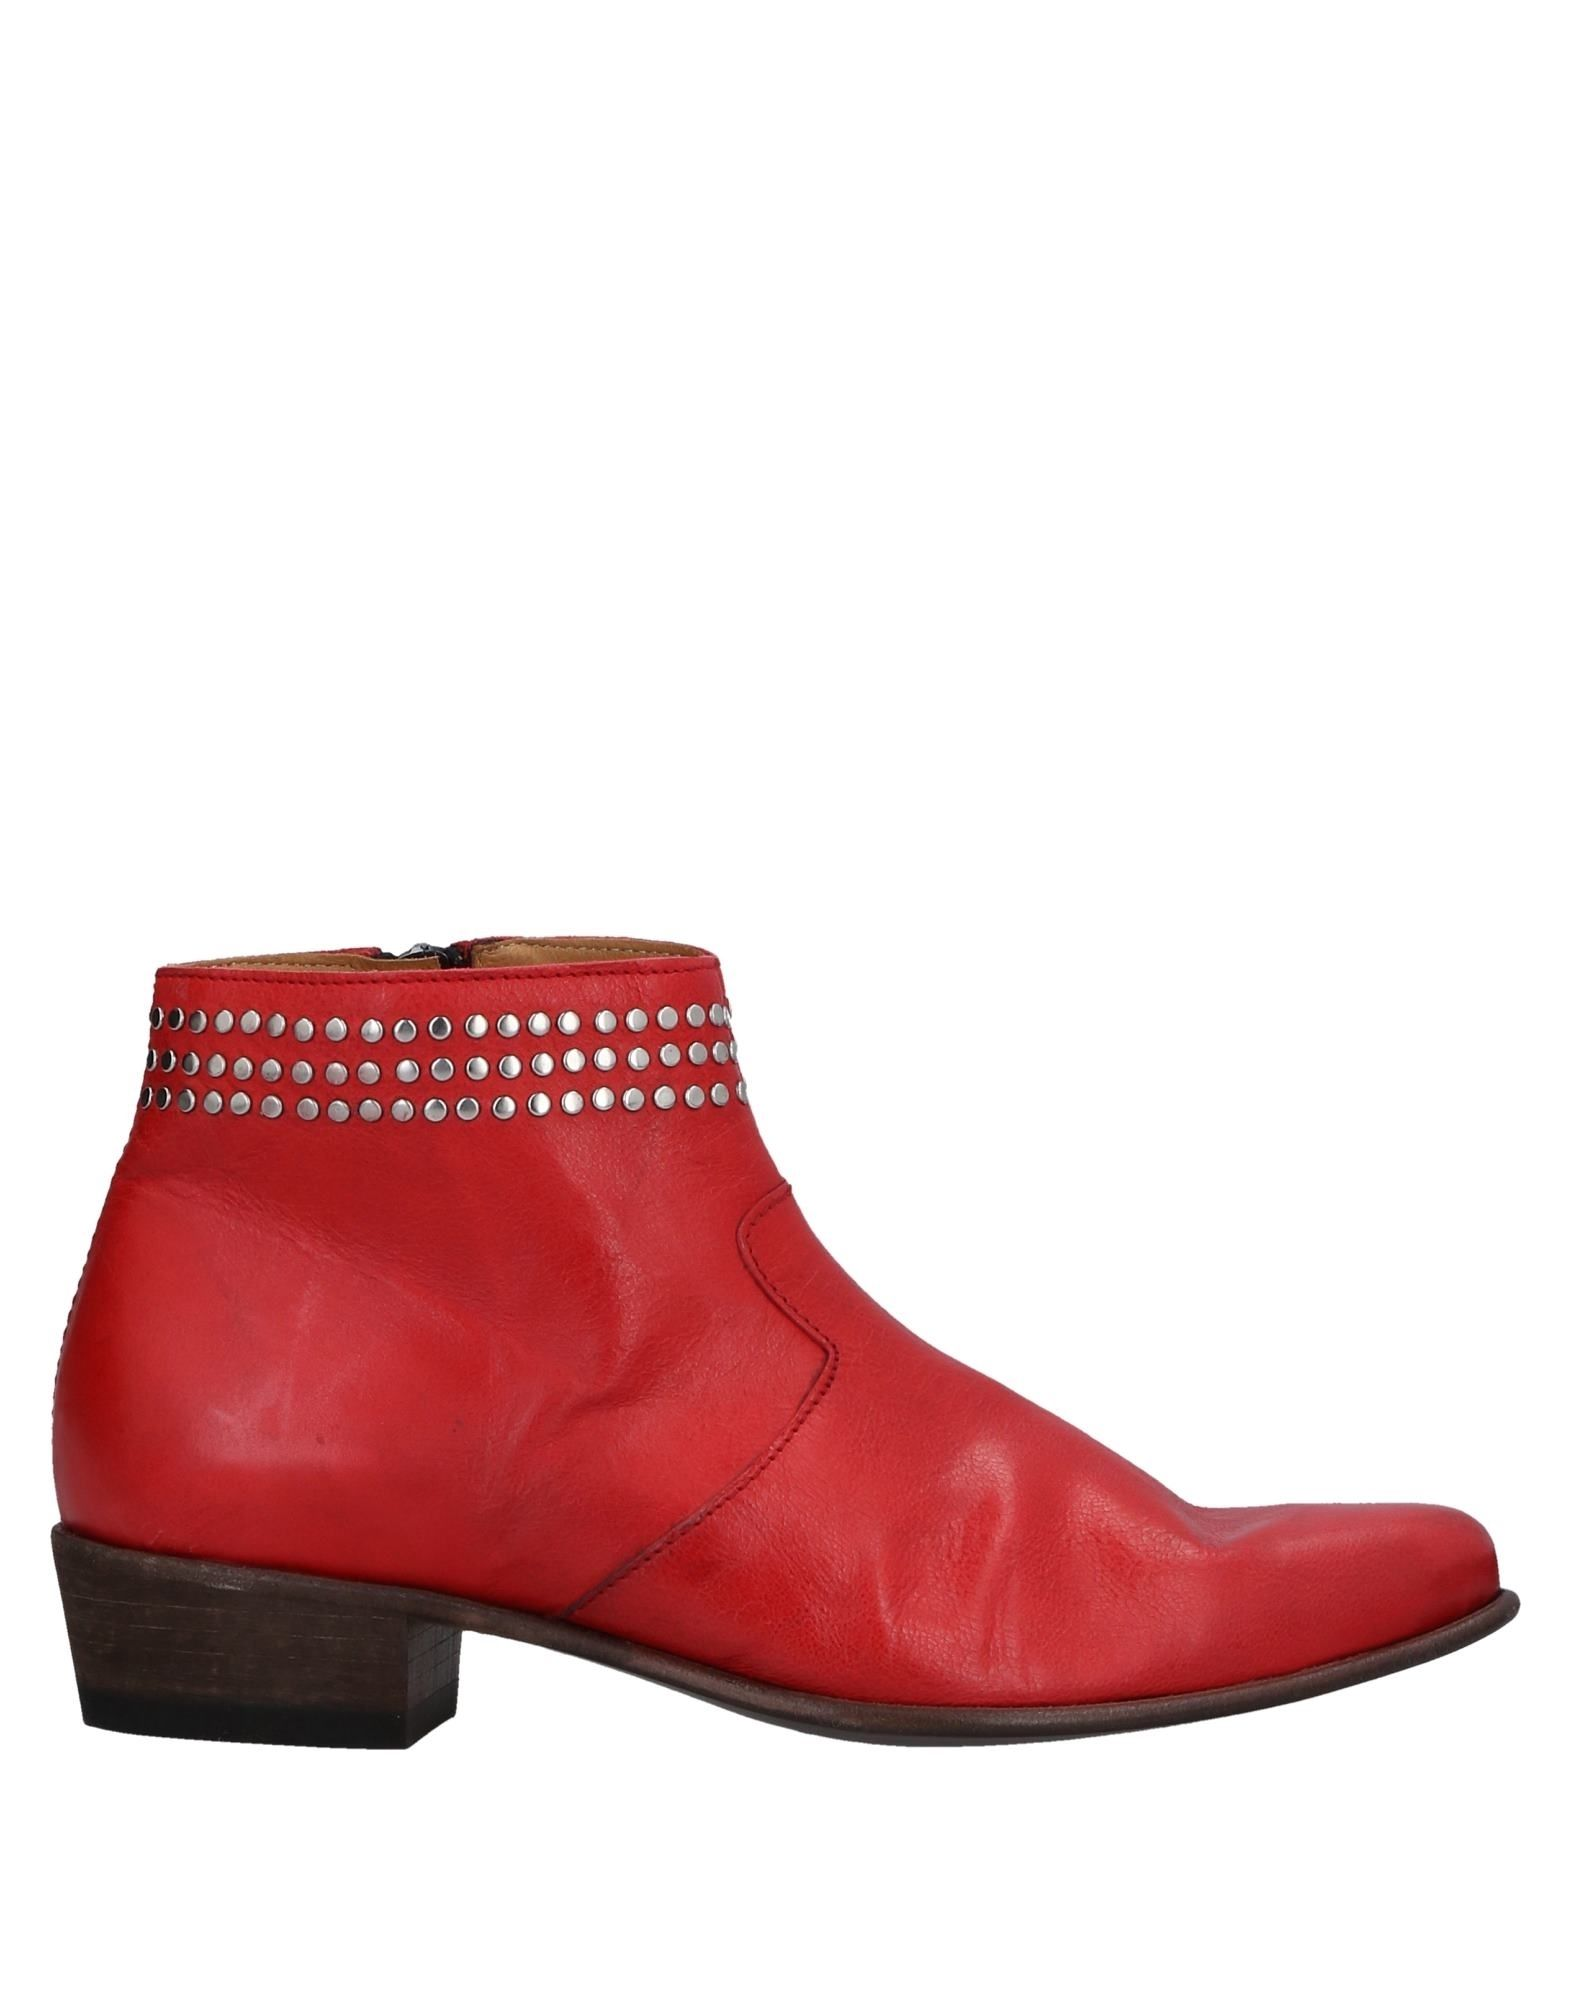 SEBOY'S Ankle Boot in Red